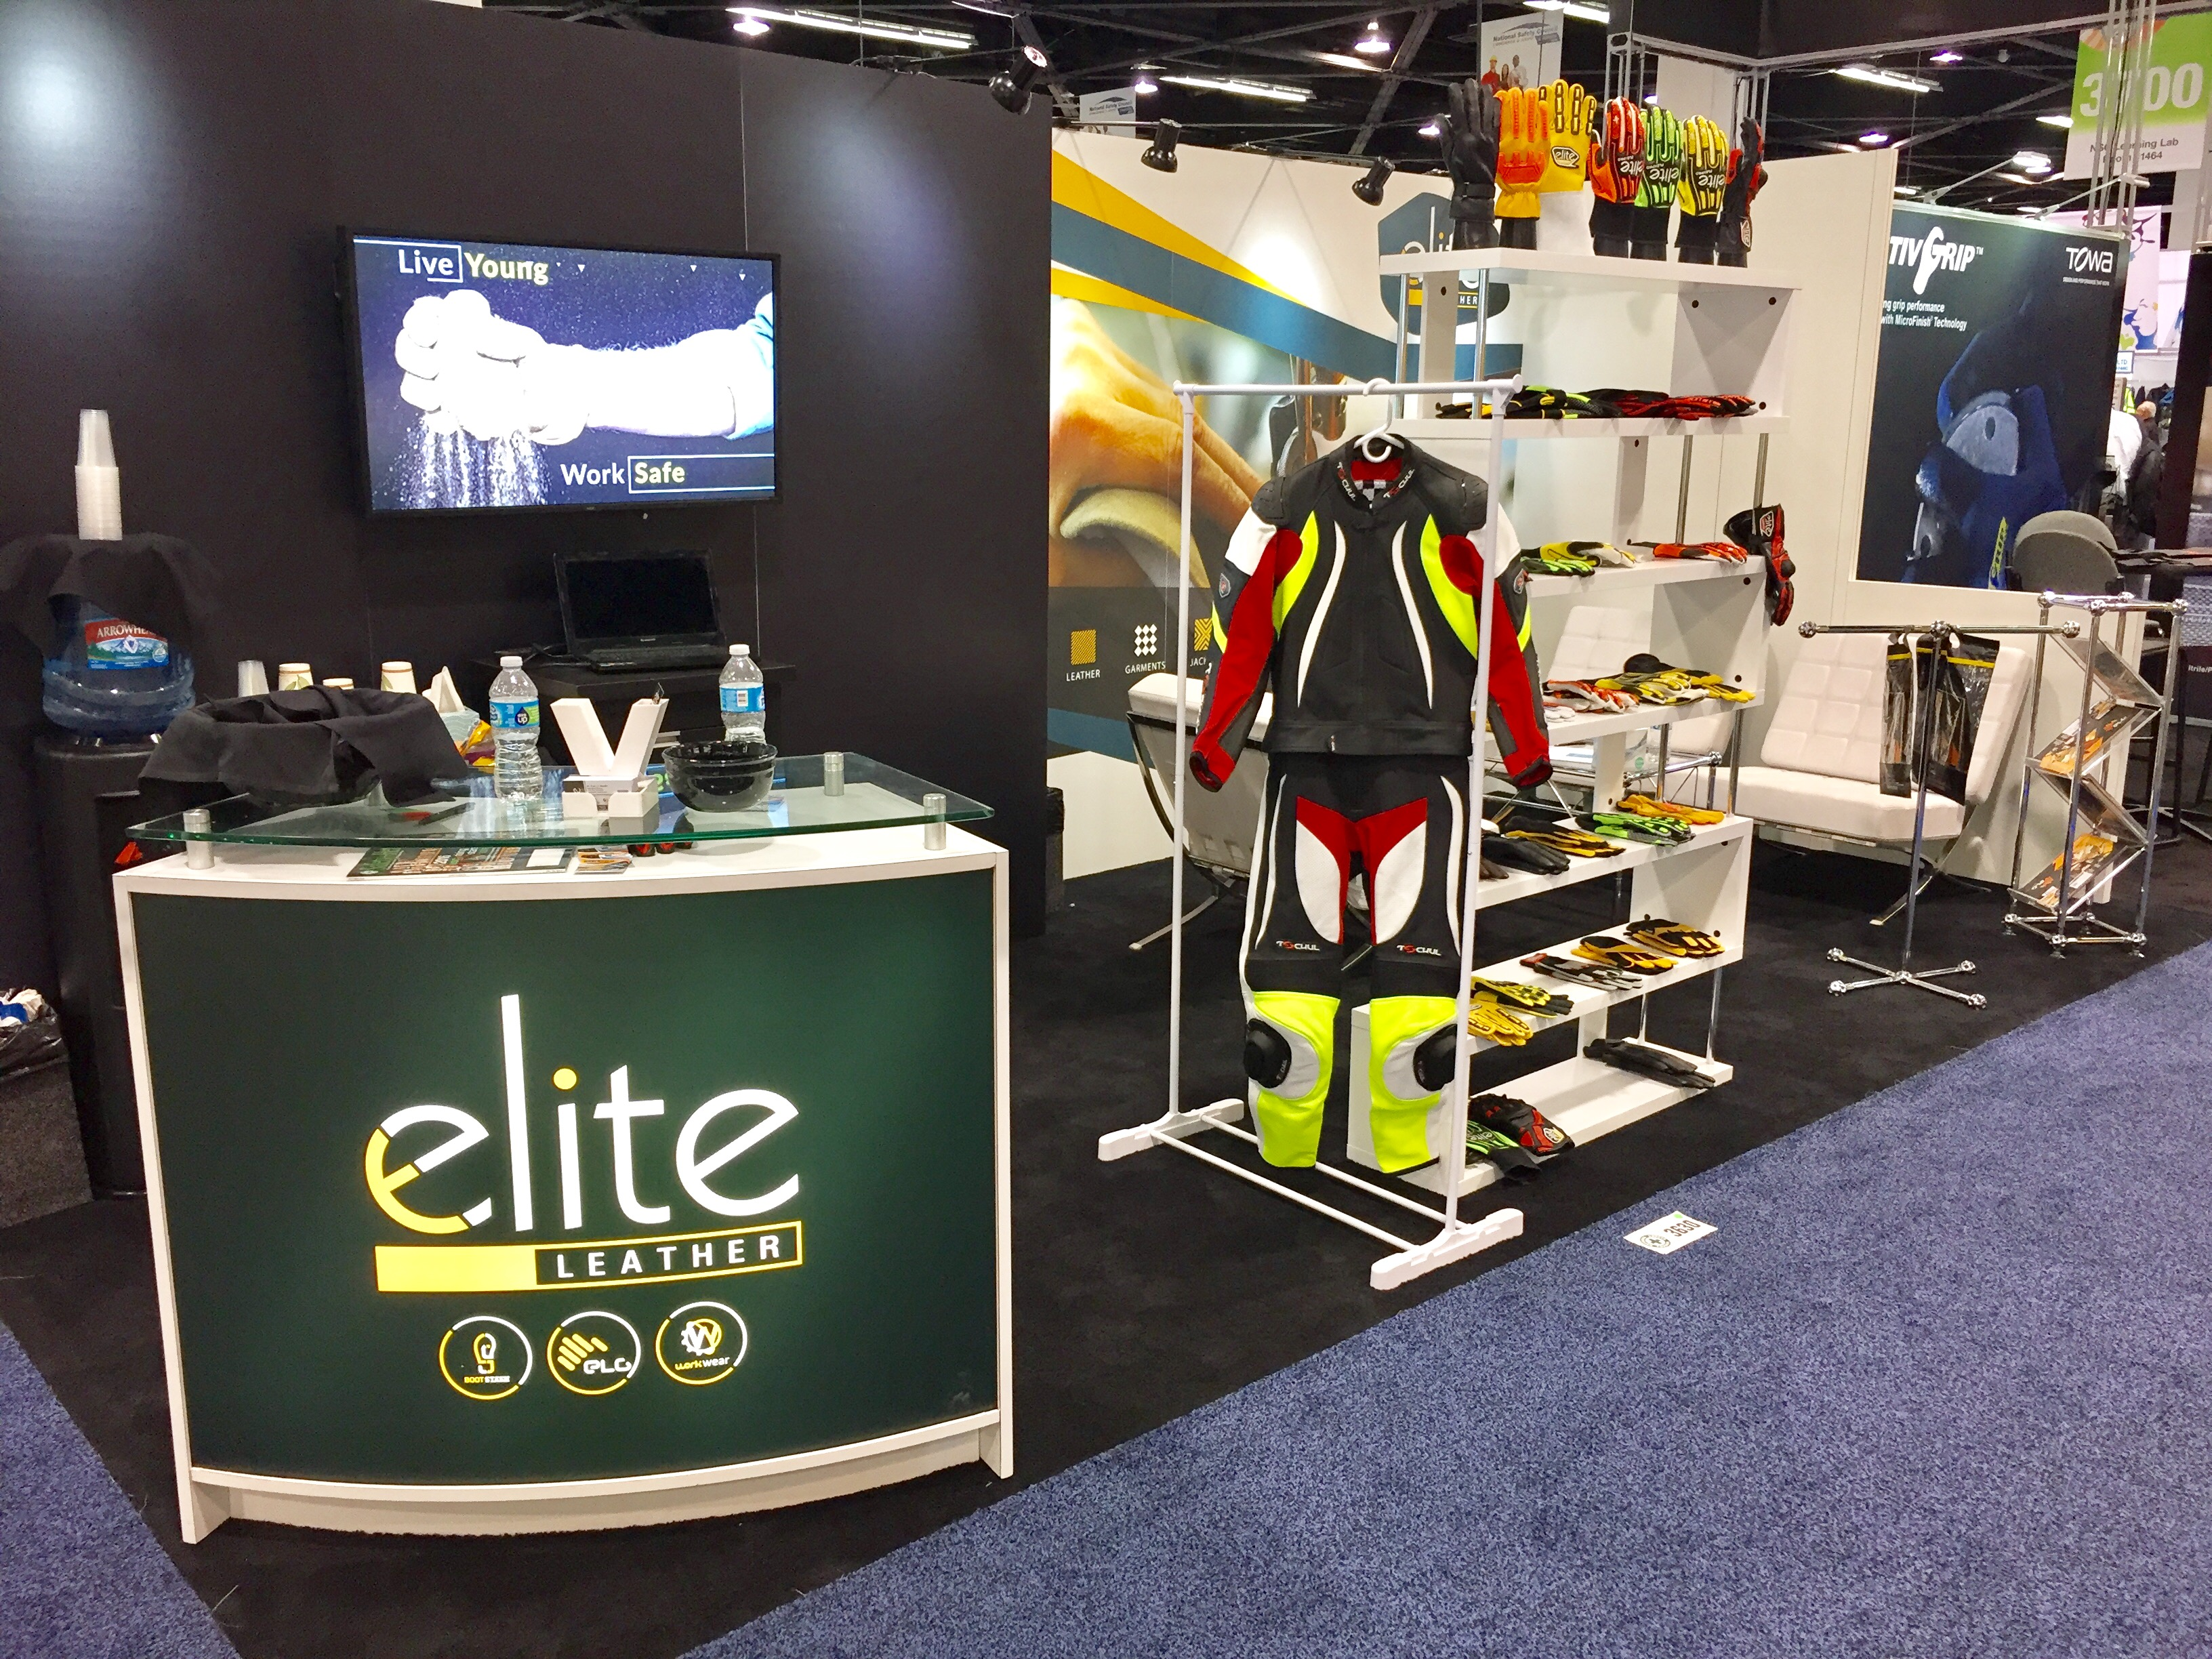 Elite Leather NSC 2016 Booth 3630 Complete